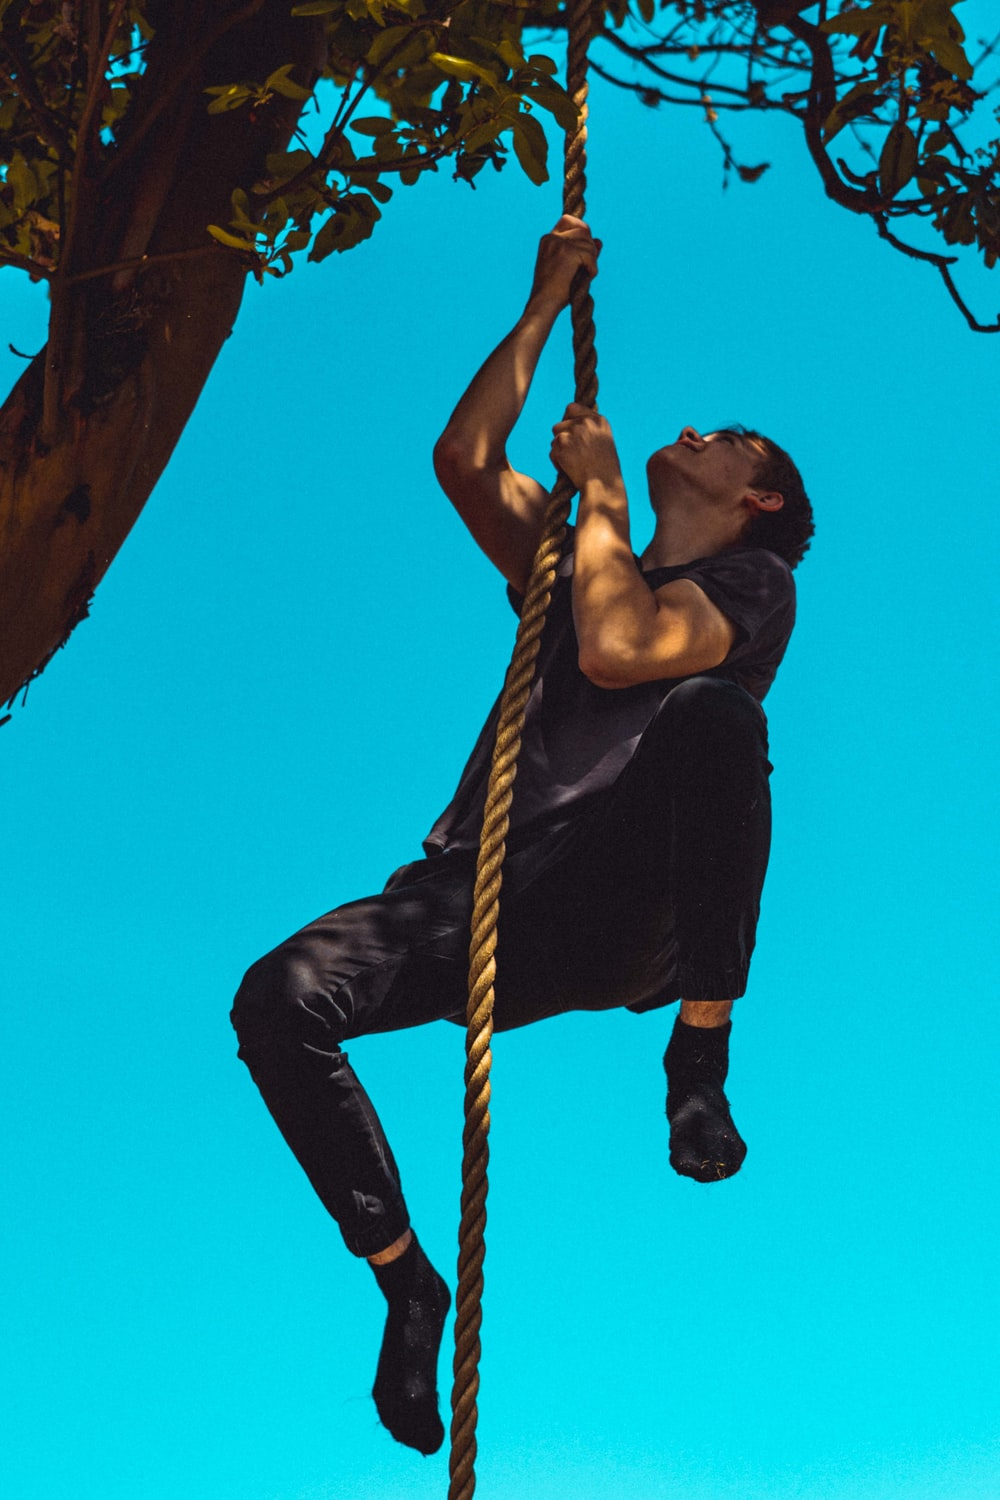 man in black tank top and black pants climbing on brown rope